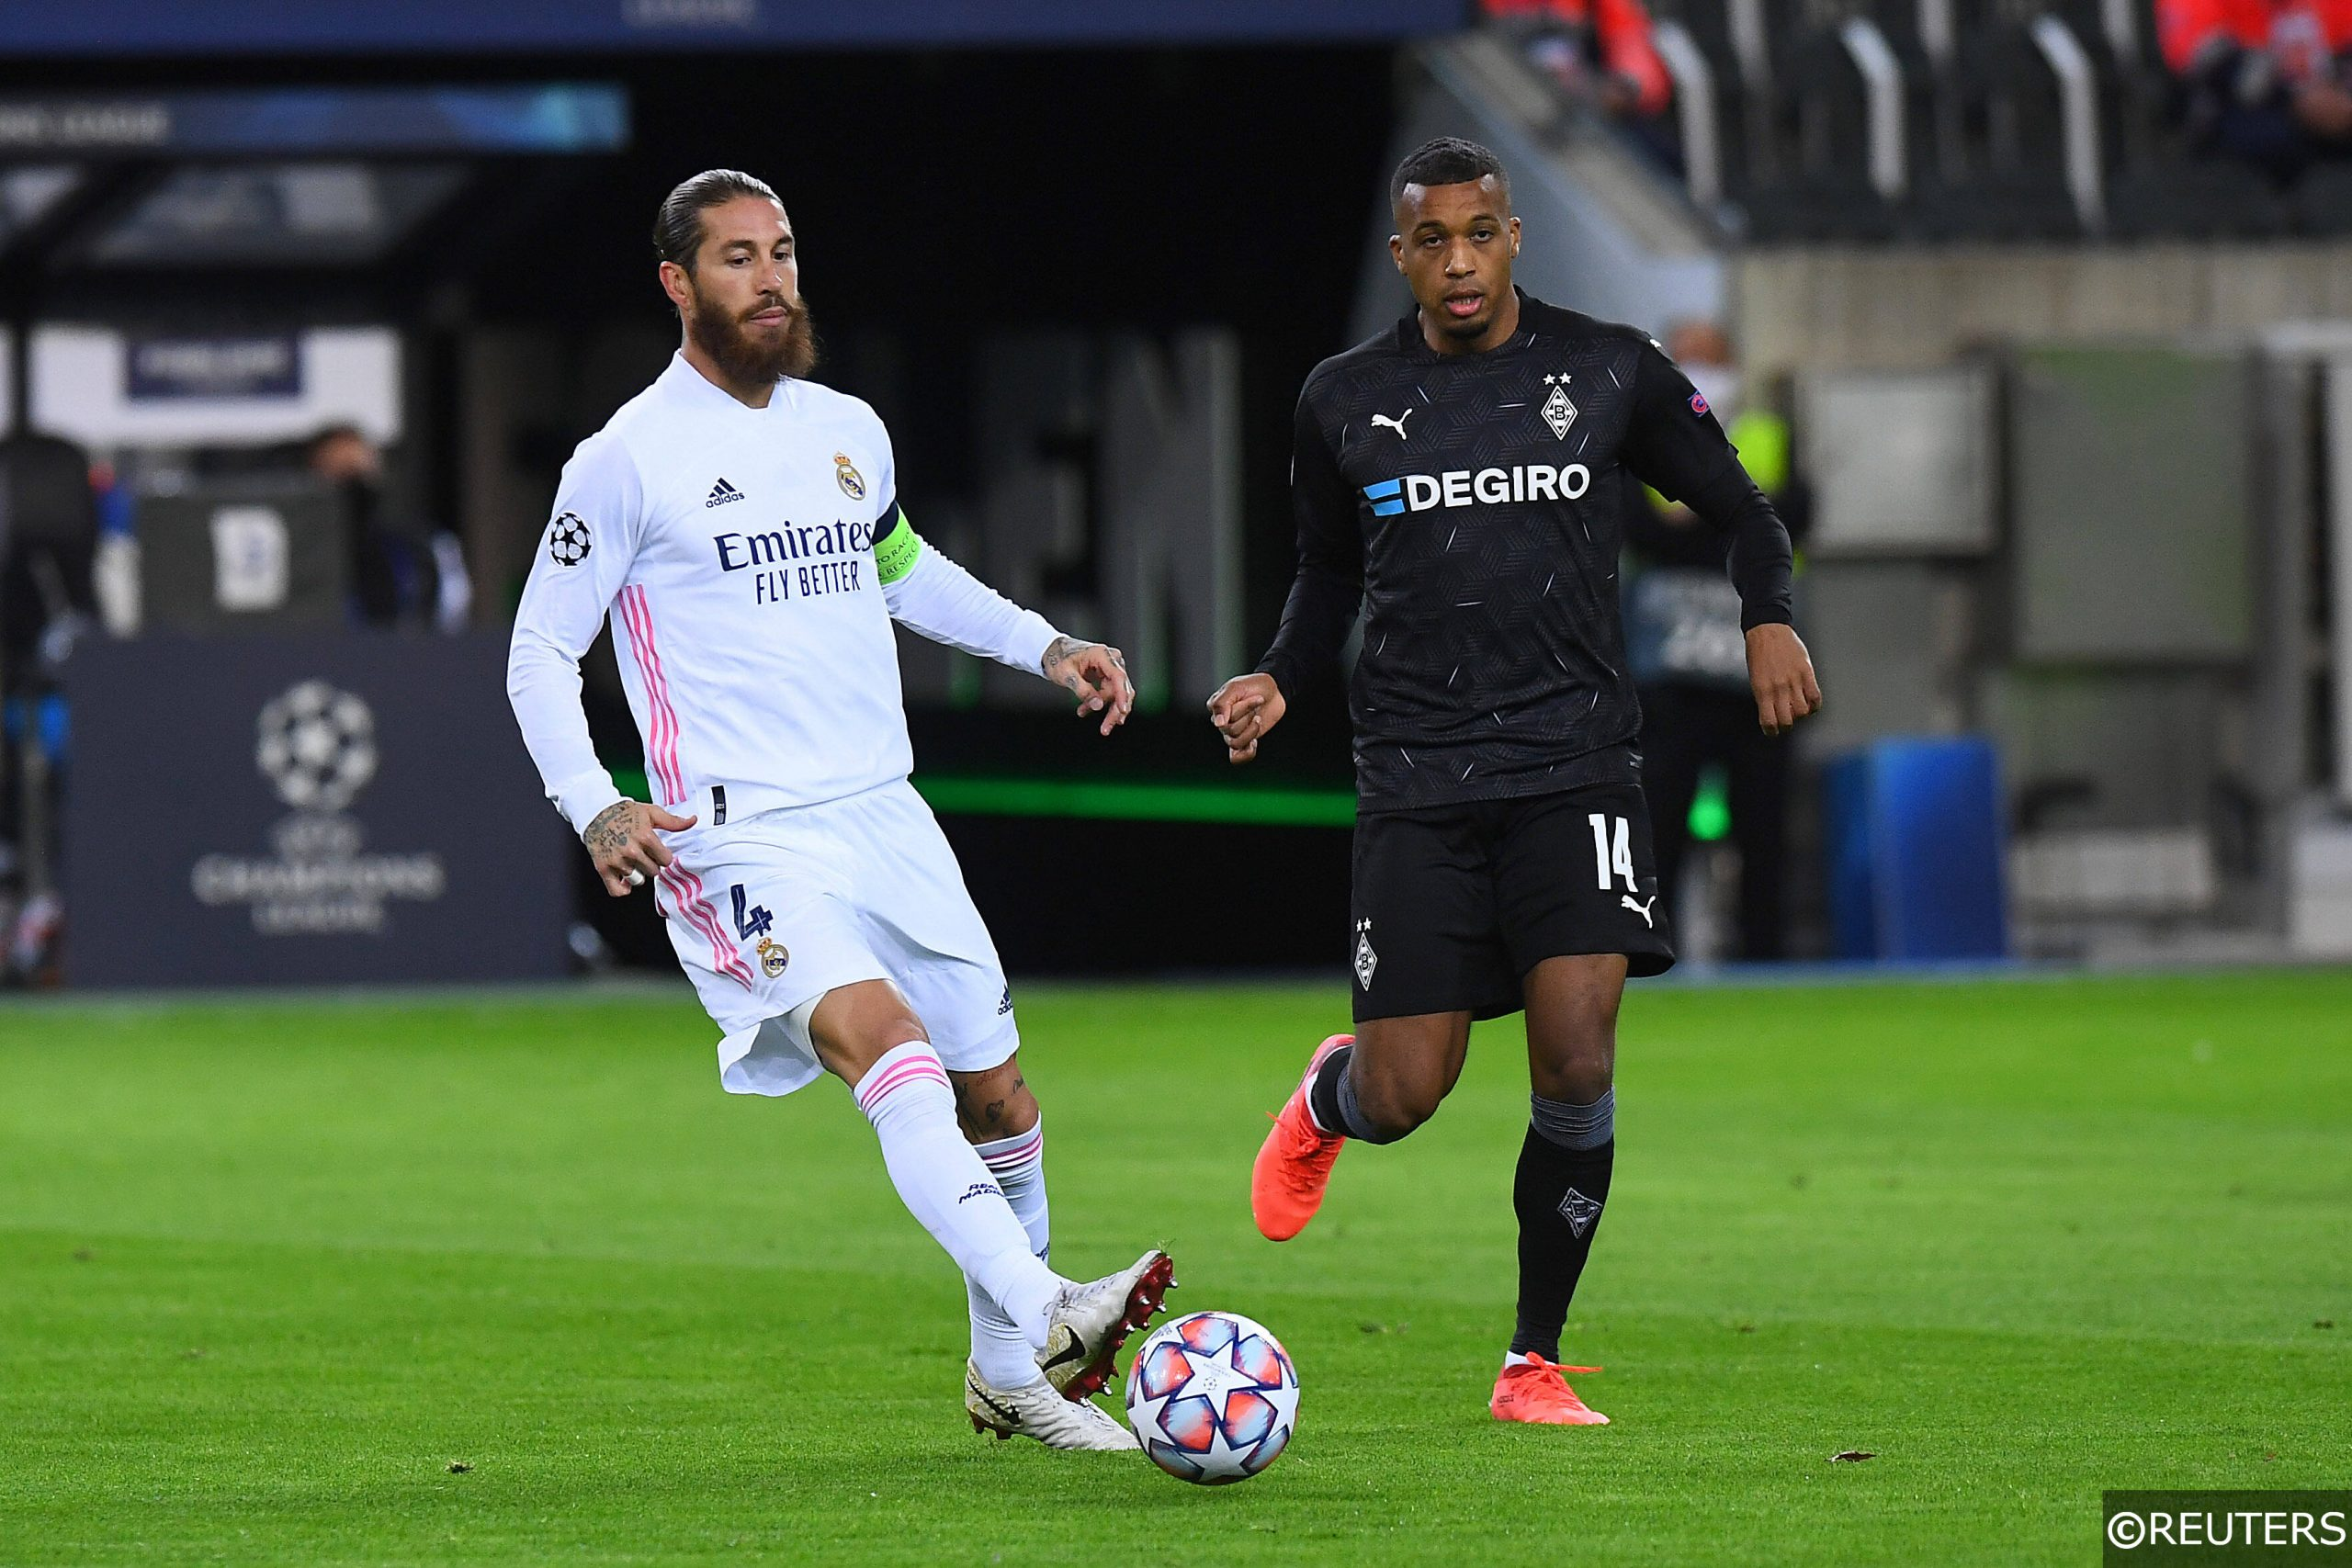 Alassane Plea Sergio Ramos Gladbach vs Real Madrid